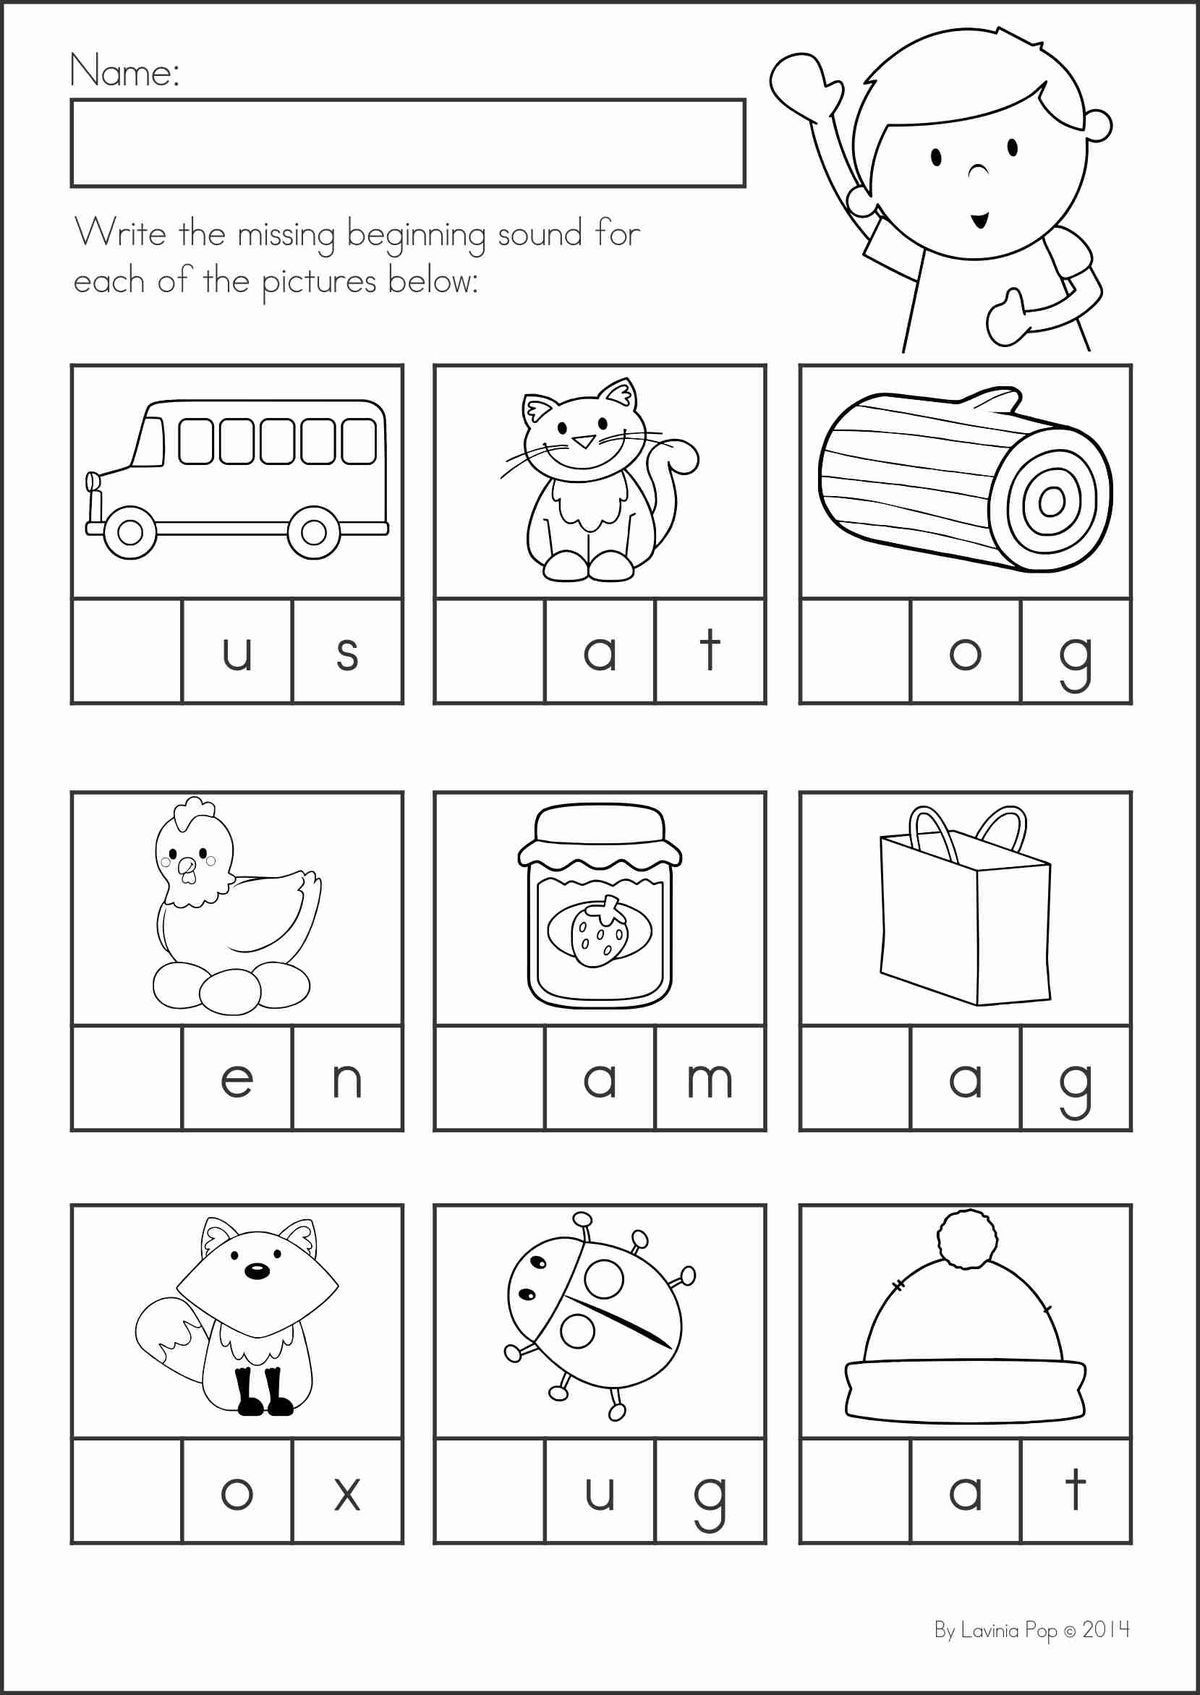 Pin By Rebecca Hargett On Stuff For My Awesome Kiddos Kindergarten Phonics Worksheets Phonics Kindergarten Free Kindergarten Worksheets